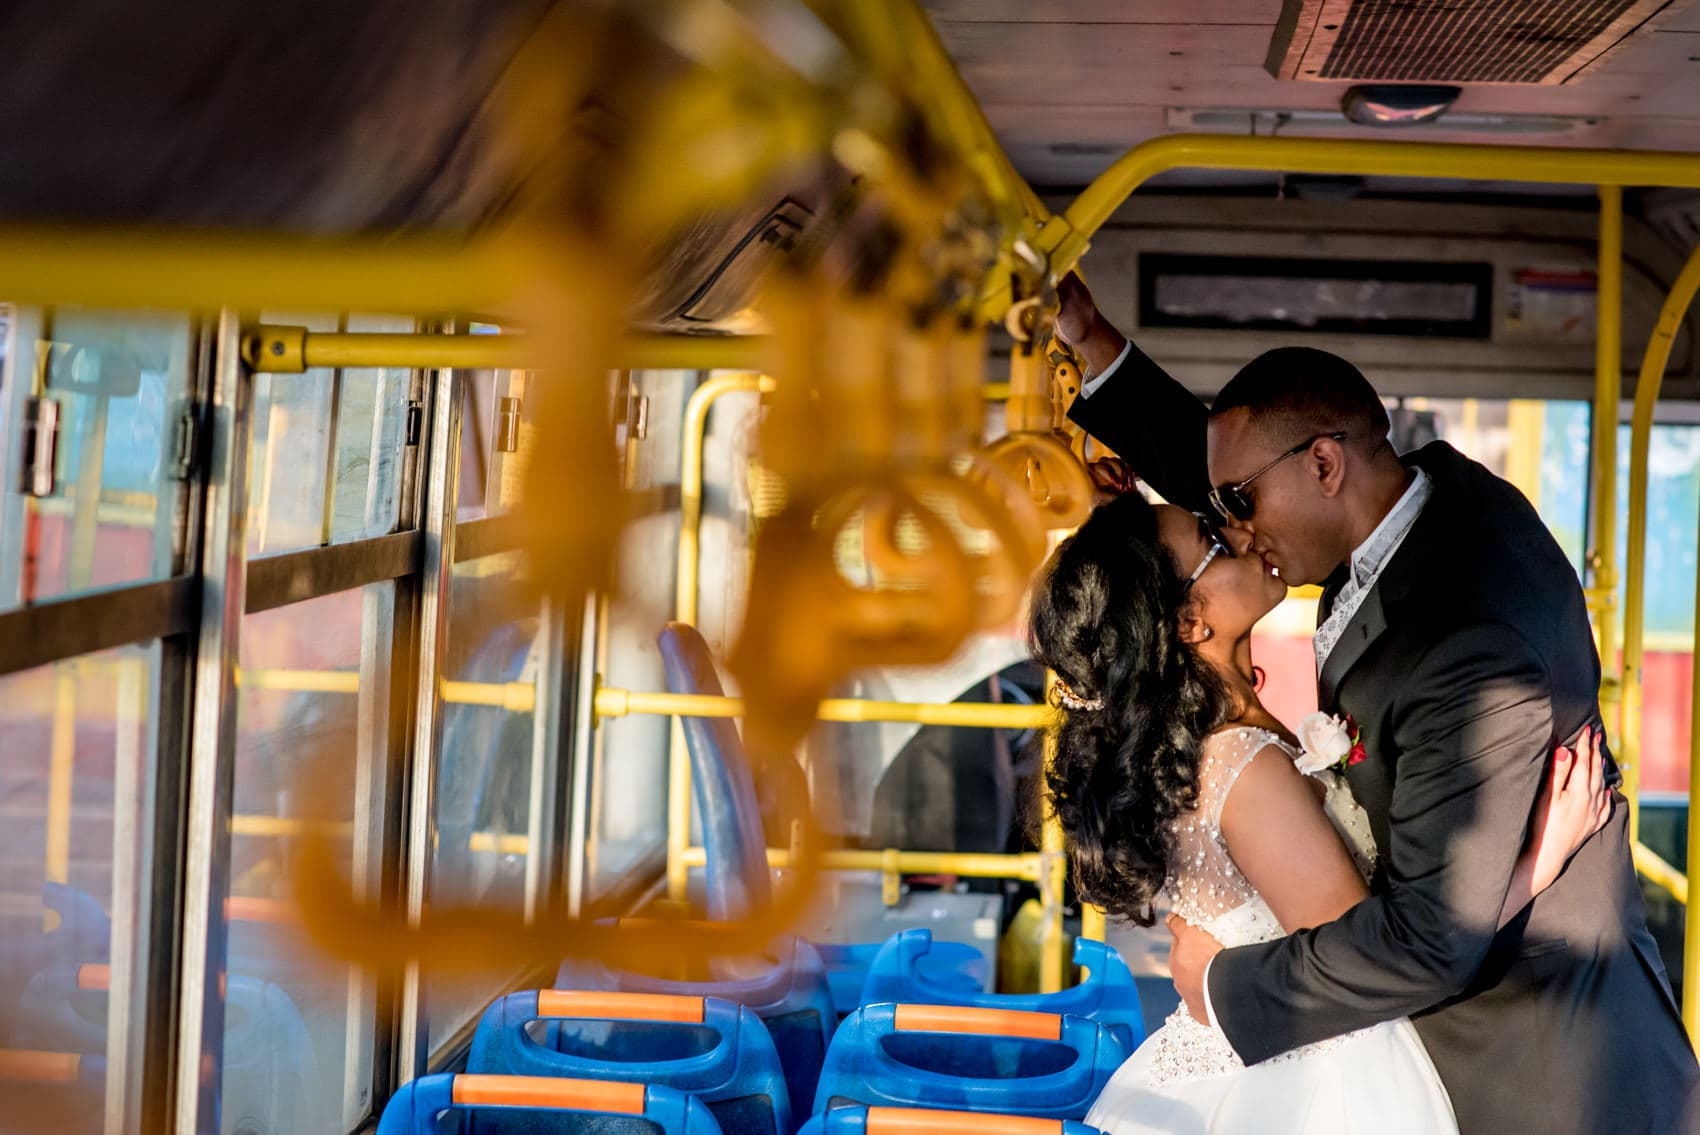 Wedding portrait photos inside a bus in Addis Ababa